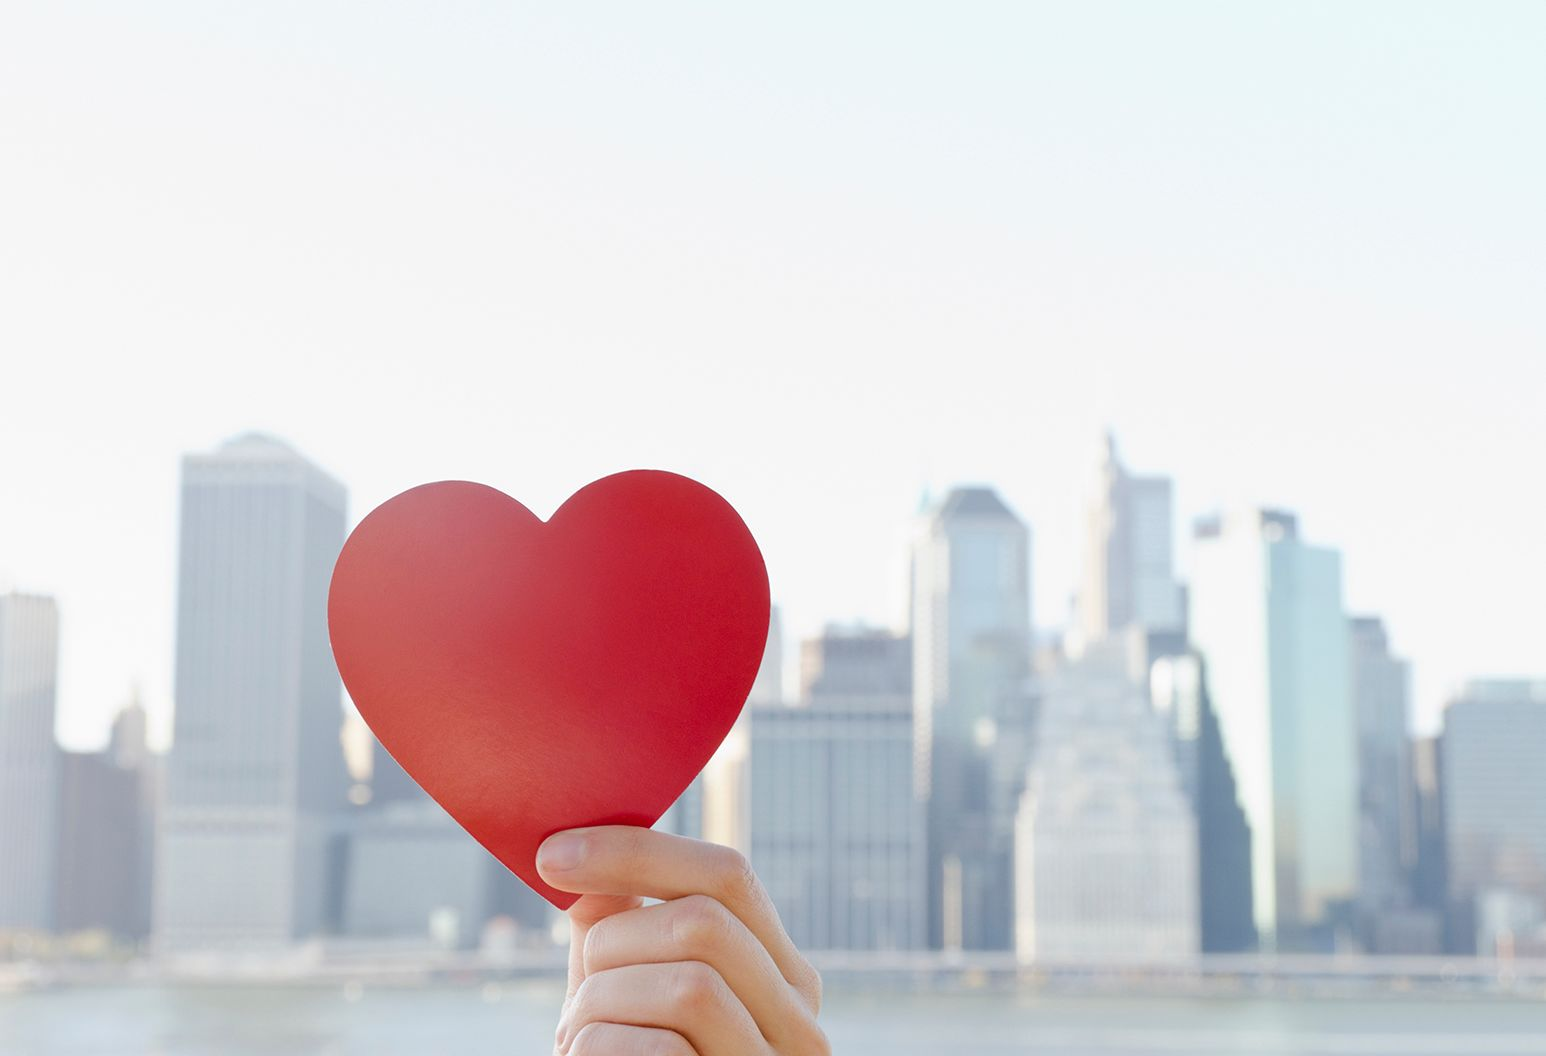 Hand holding a paper cut out of a heart, city skyline in the background